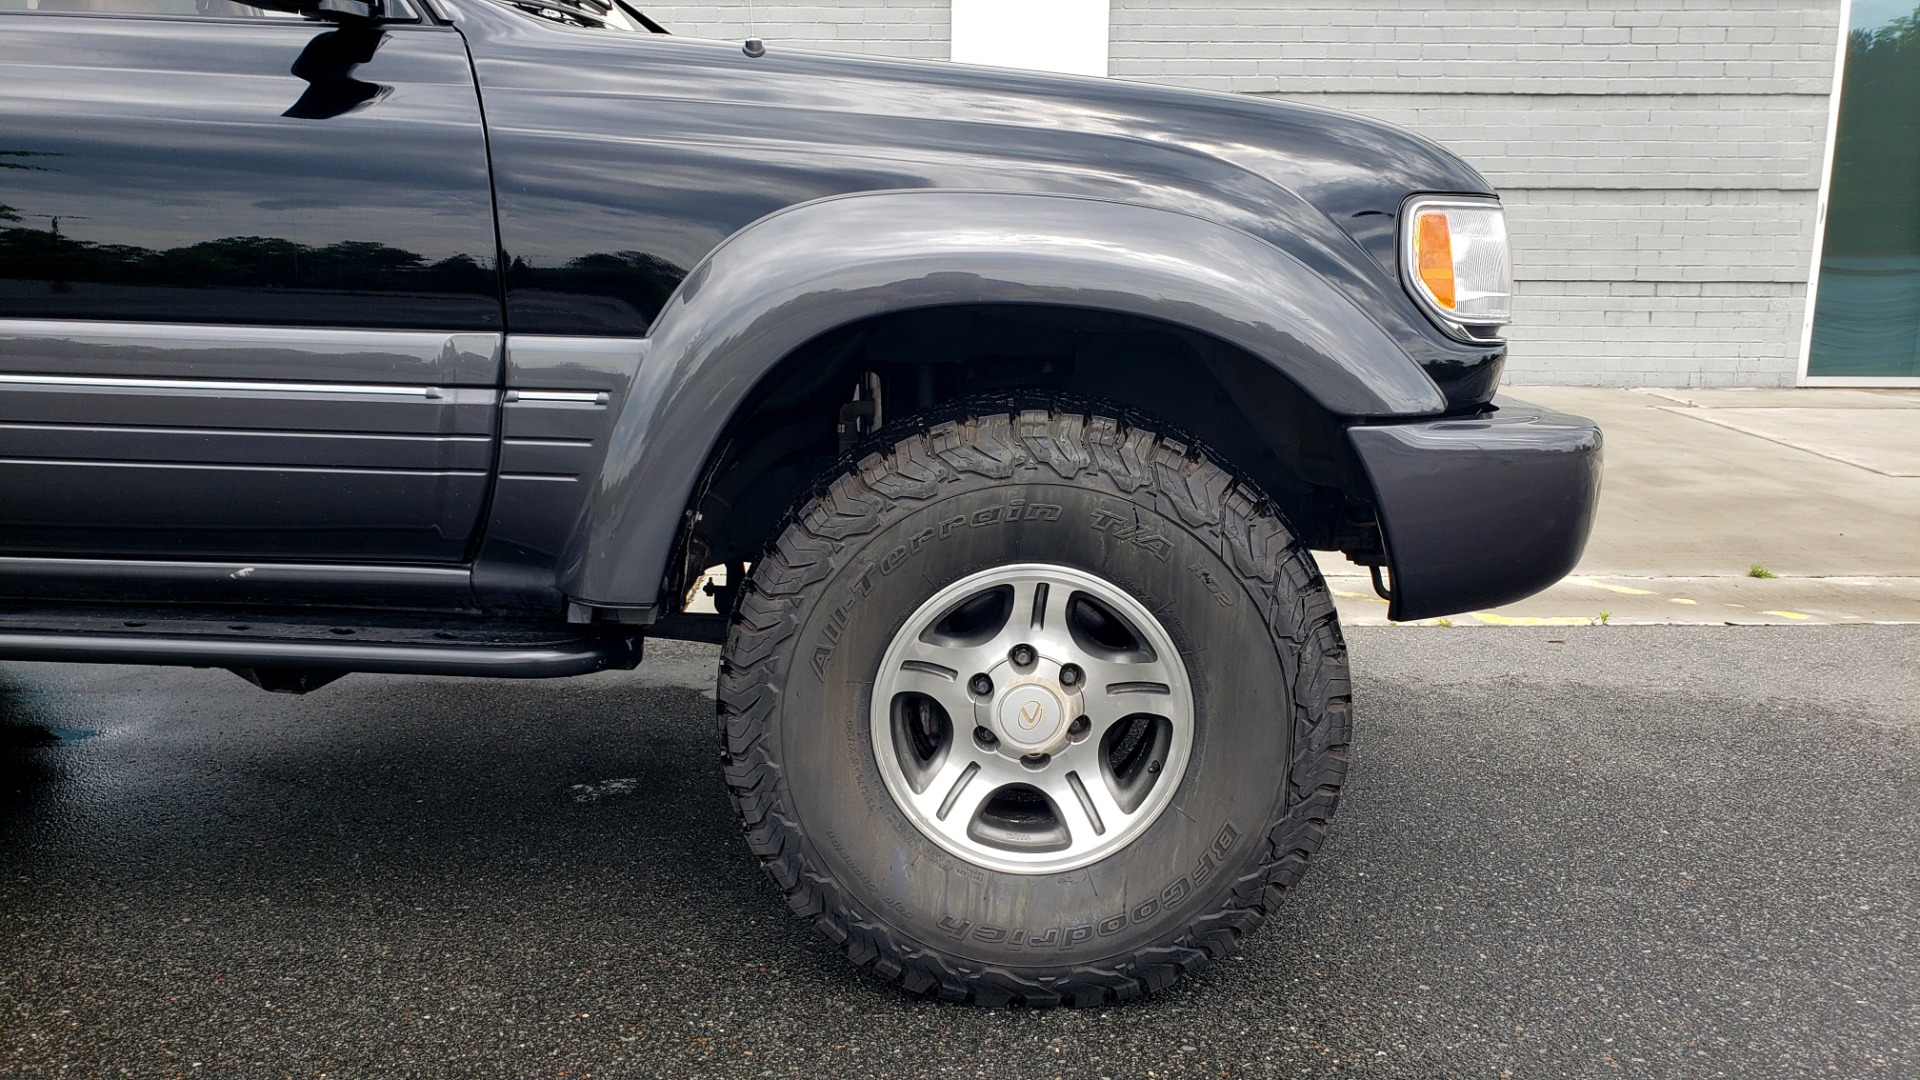 Used 1996 Lexus LX 450 AWD / 4.5L 6-CYL / 4-SPD AUTO / RUNNING BOARDS / NEW BFG TIRES for sale $49,995 at Formula Imports in Charlotte NC 28227 87